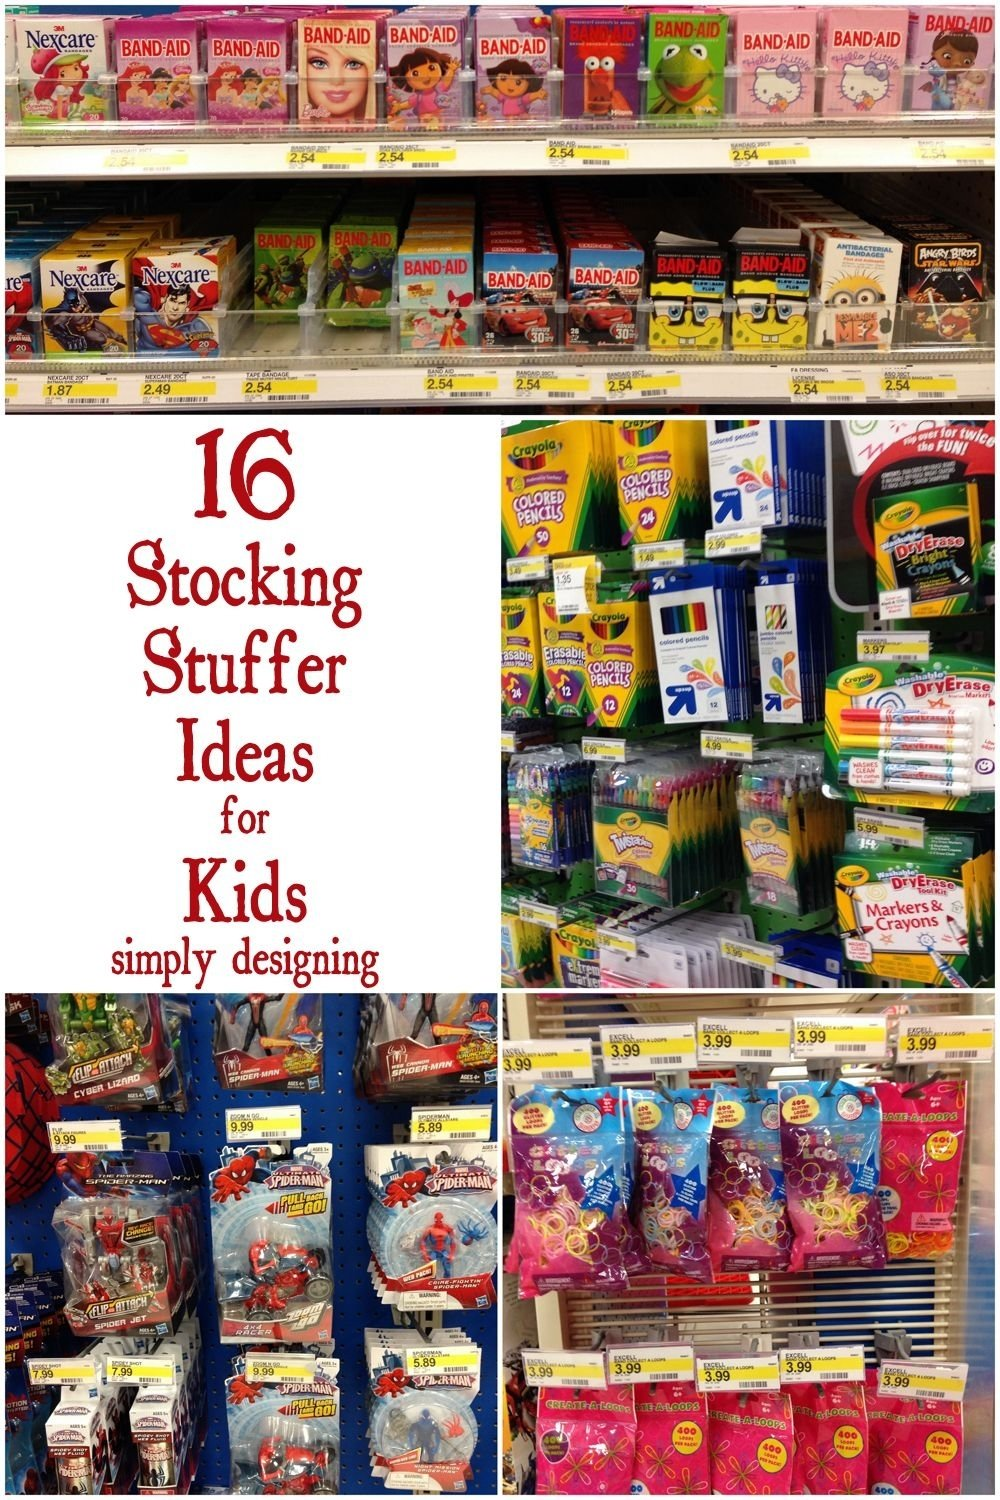 10 Unique Stocking Stuffers Ideas For Kids stocking stuffers for kids target giveaway mykindofholiday 1 2021